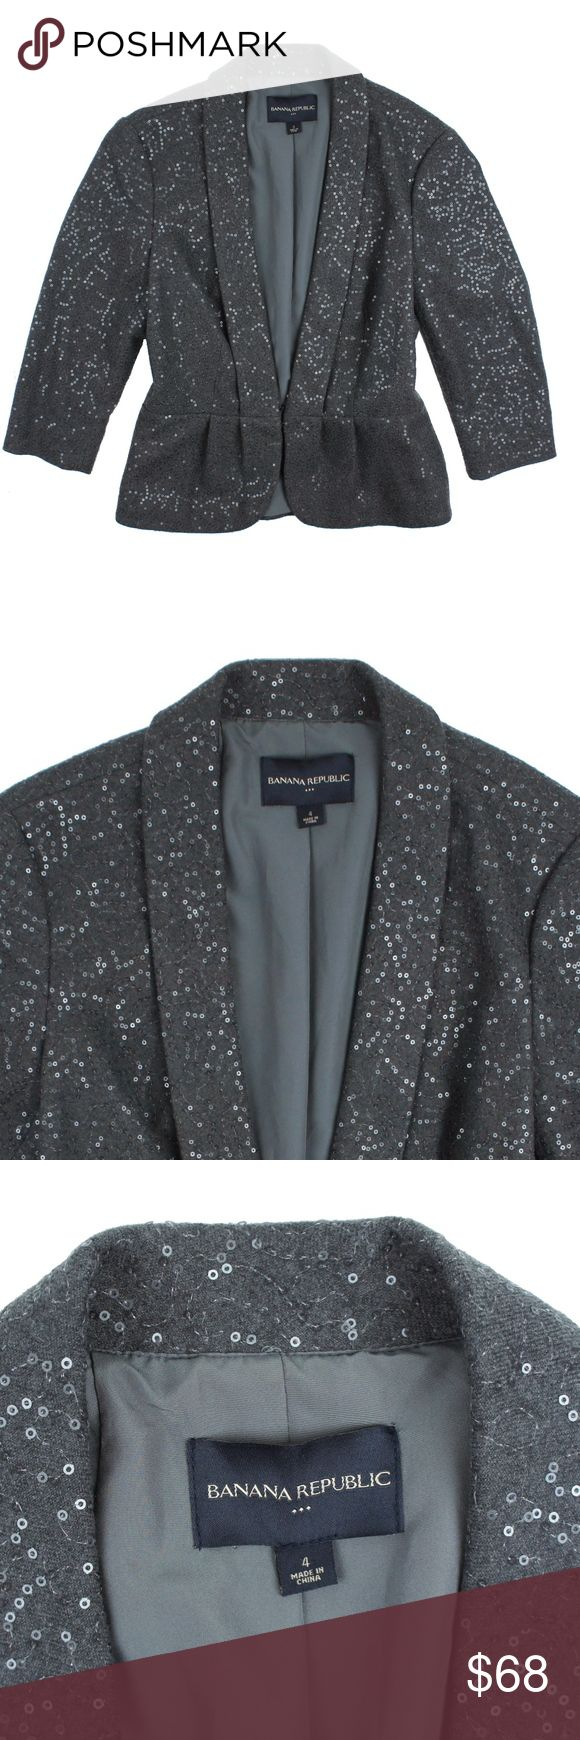 """New BANANA REPUBLIC Gray Sequin Peplum Jacket Size - 4  NWOT. This new dark gray sequin jacket from BANANA REPUBLIC features sequins throughout, a hook and bar closure, 3/4 length sleeves and a peplum style. Fully lined. Made of poly/rayon/lycra  Measures: Bust: 37"""" Total Length: 22.5"""" Sleeves: 17"""" Banana Republic Jackets & Coats"""